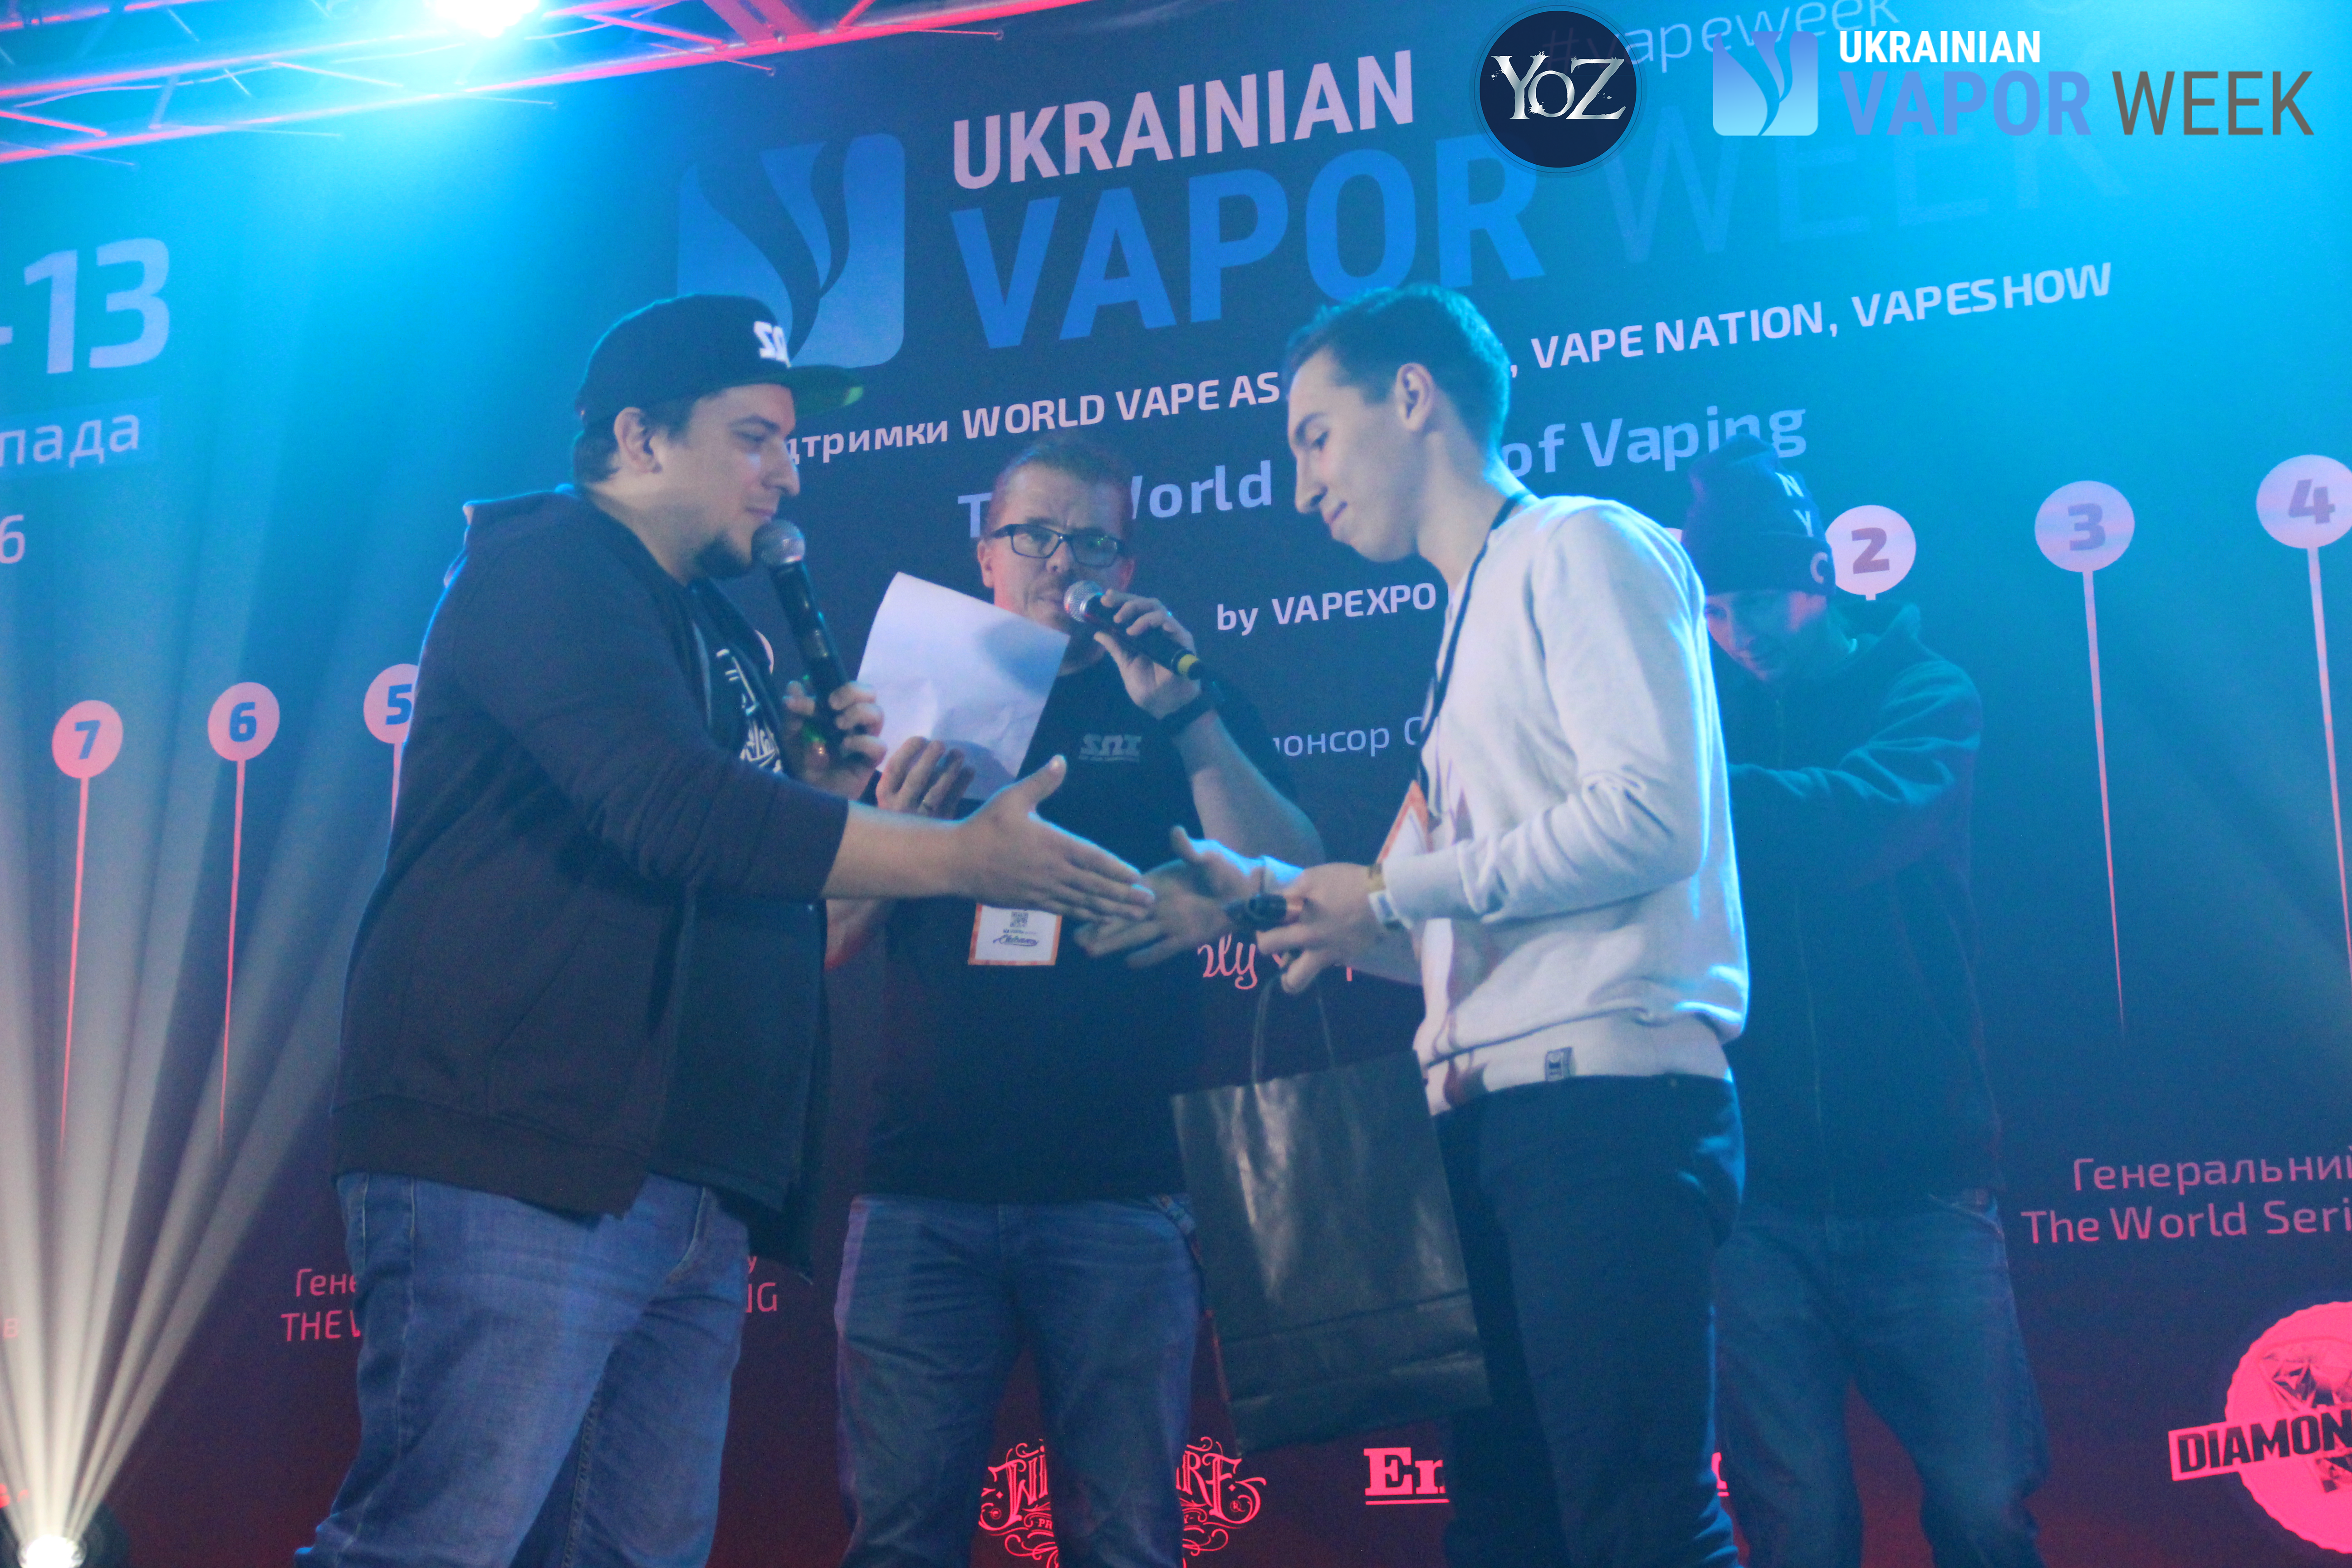 Ukrainian vapor week